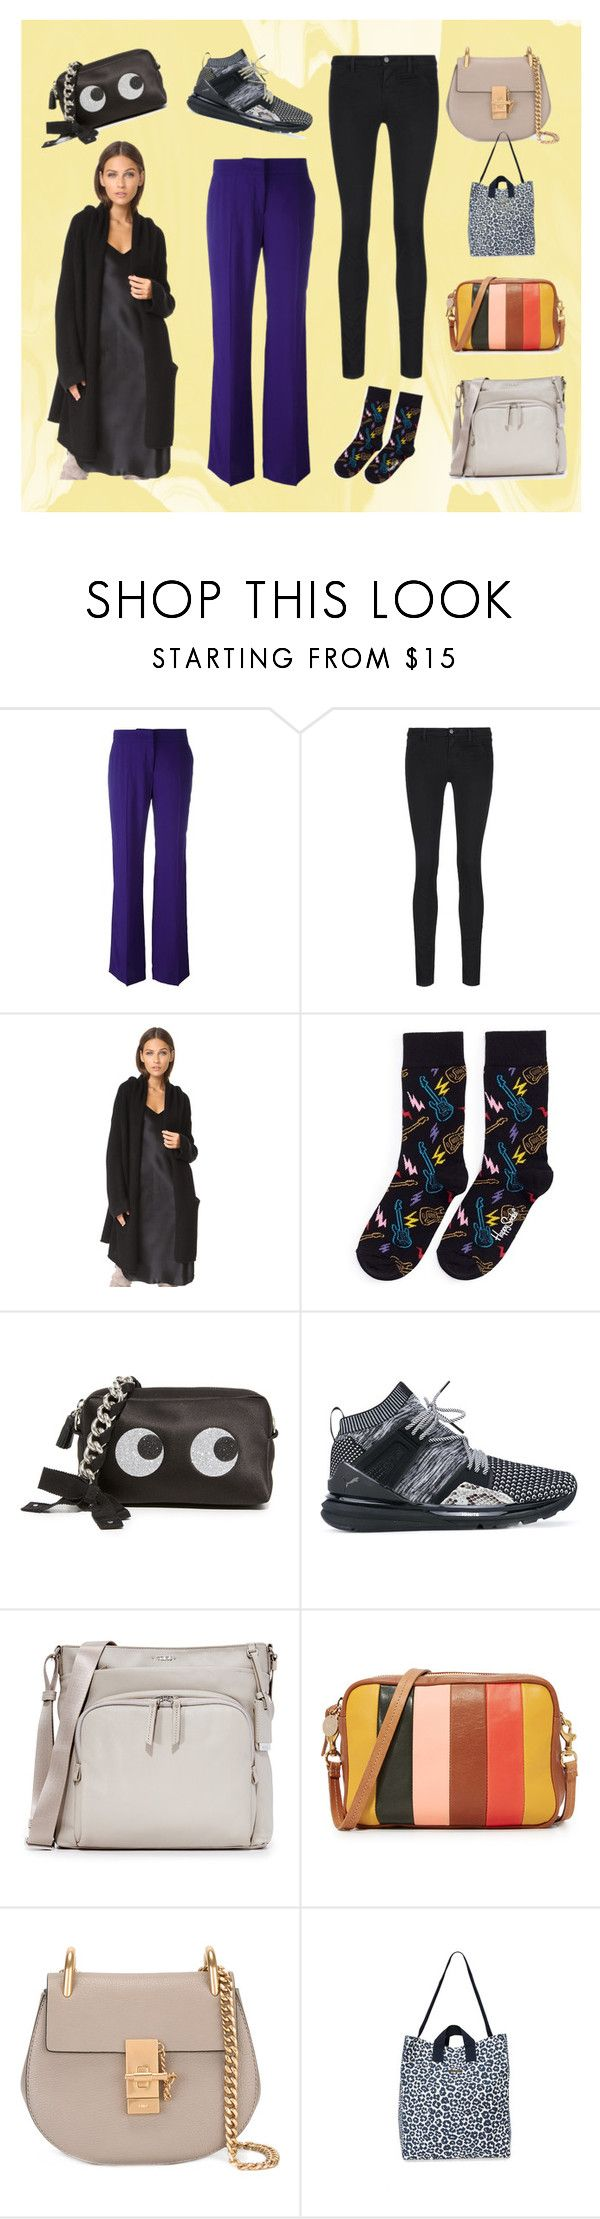 """""""Casual Looks"""" by justinallison ❤ liked on Polyvore featuring J Brand, ThePerfext, Happy Socks, Anya Hindmarch, Puma, Tumi, Clare V. and STELLA McCARTNEY"""